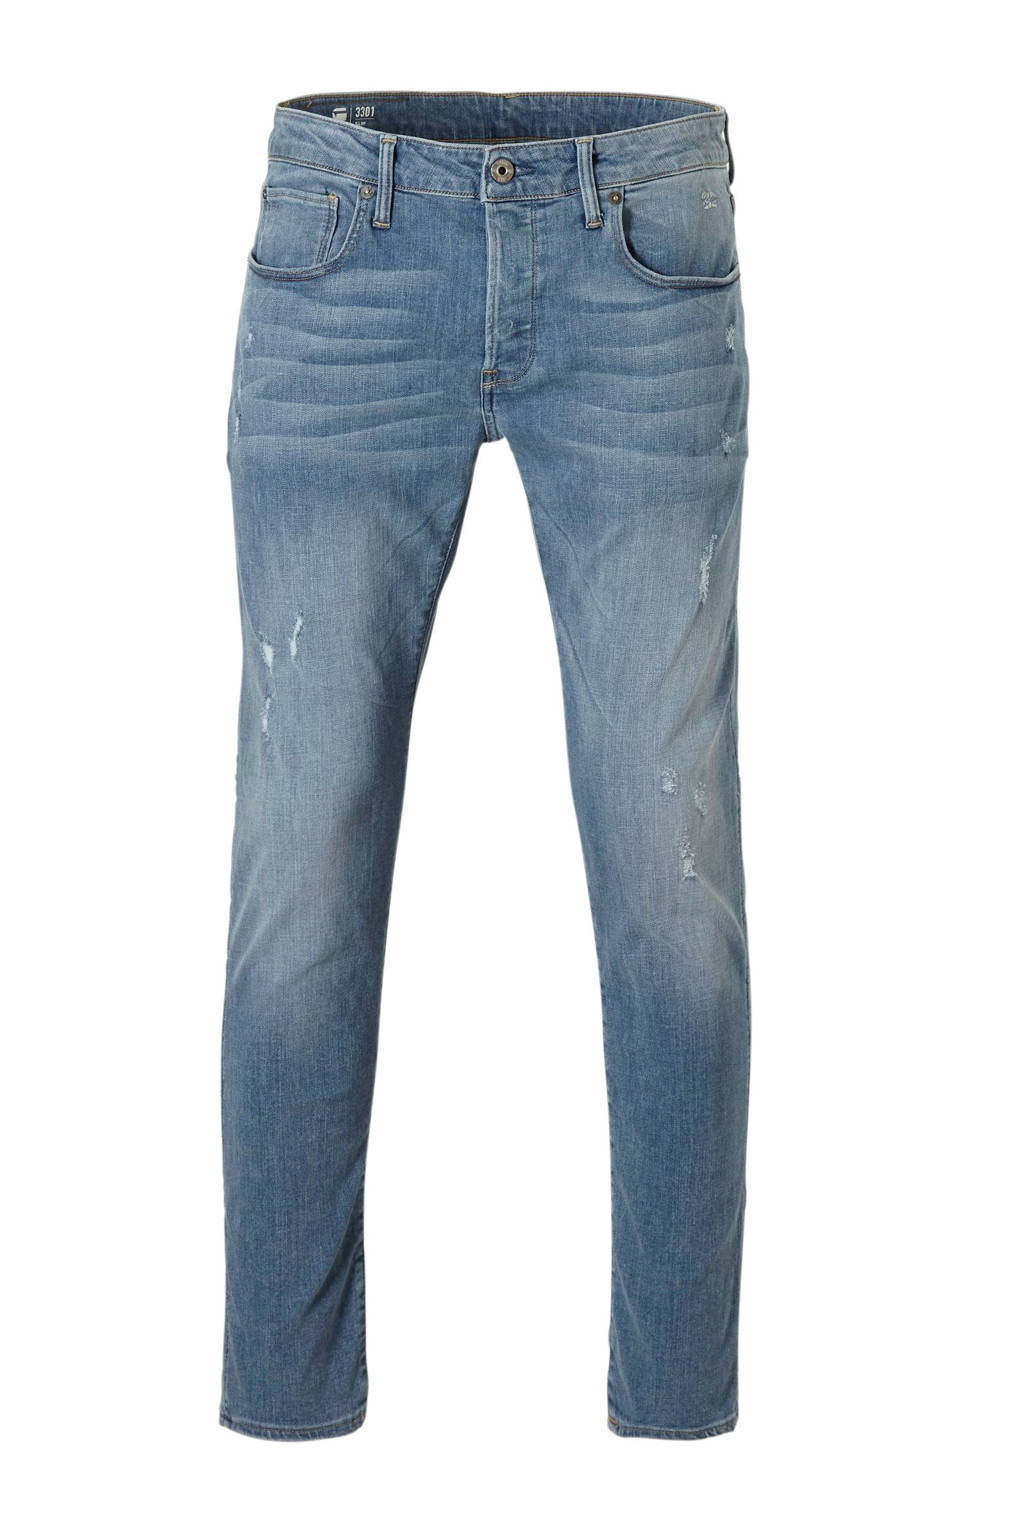 G-Star RAW 3301 straight fit jeans, Light denim